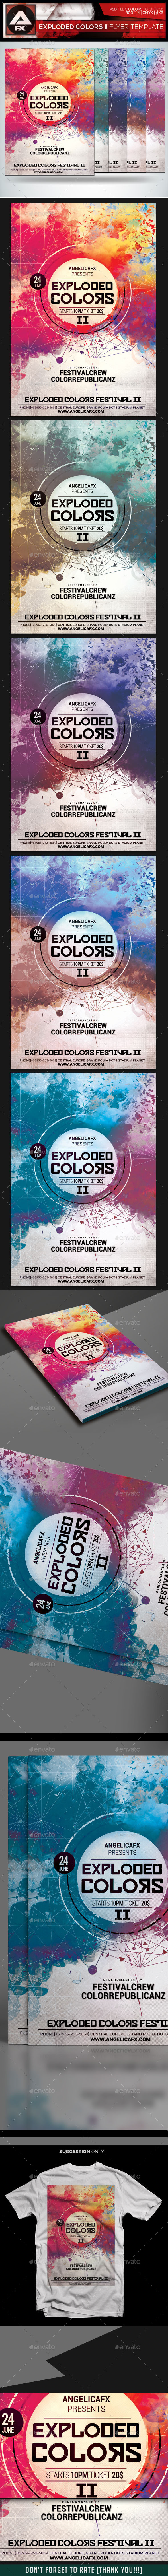 GraphicRiver Exploded Colors II Flyer Template 10362715